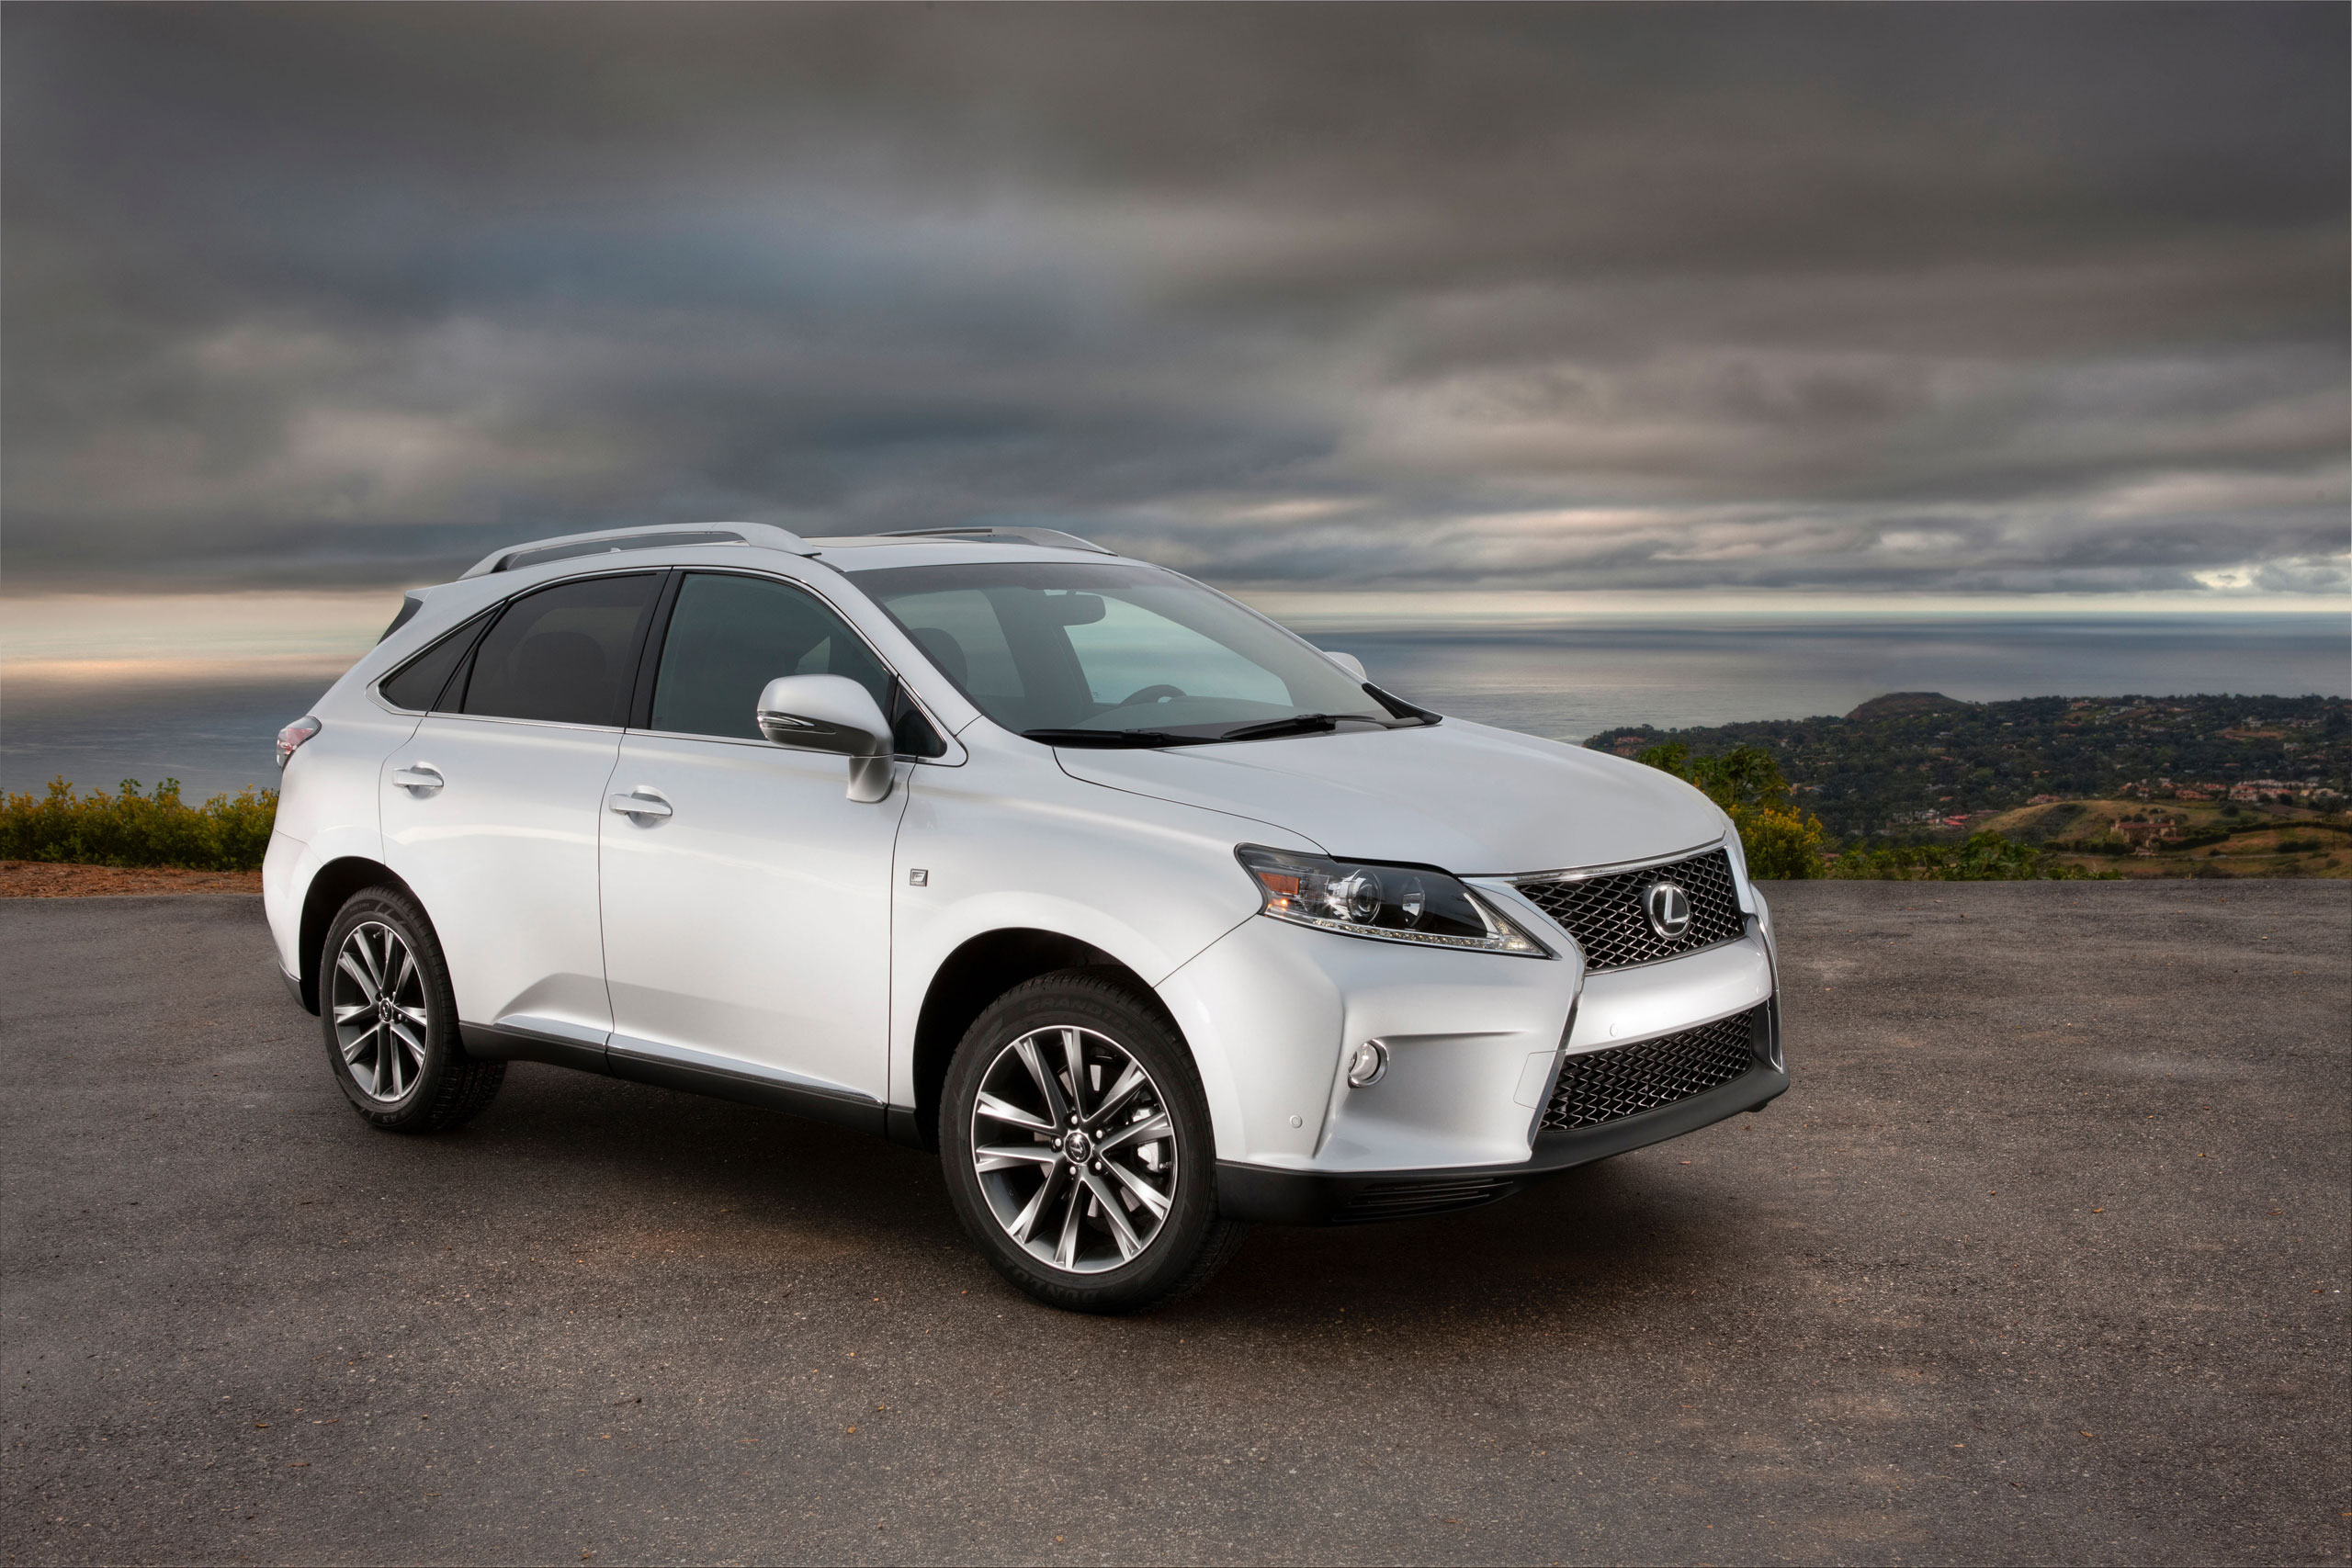 2013 lexus rx 350 f sport official photo gallery lexus enthusiast. Black Bedroom Furniture Sets. Home Design Ideas